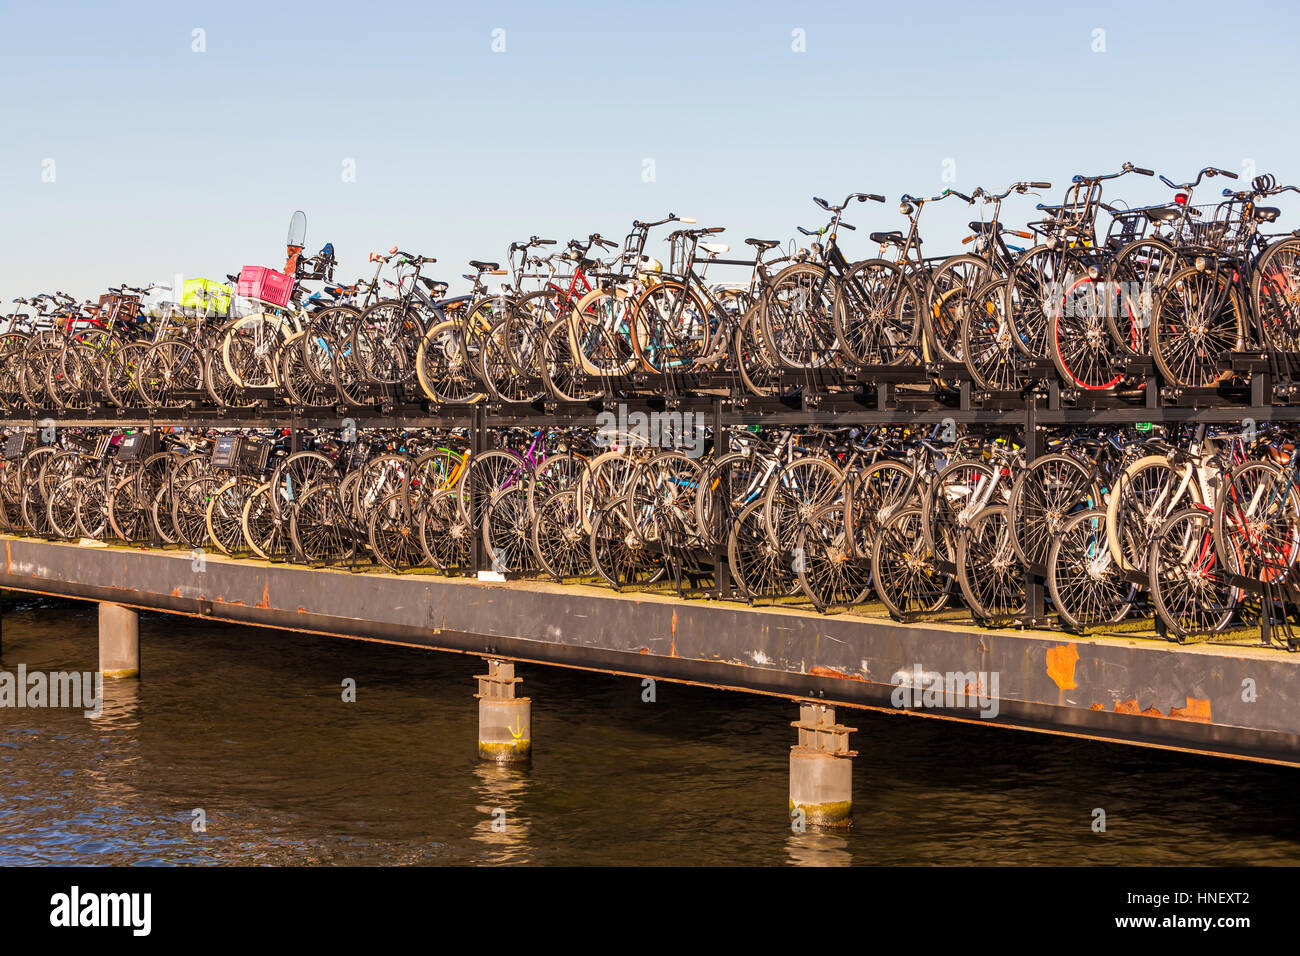 Bicycle parking lot on the river Het IJ, many bicycles in the bike racks, harbor area, Amsterdam, Province of North - Stock Image